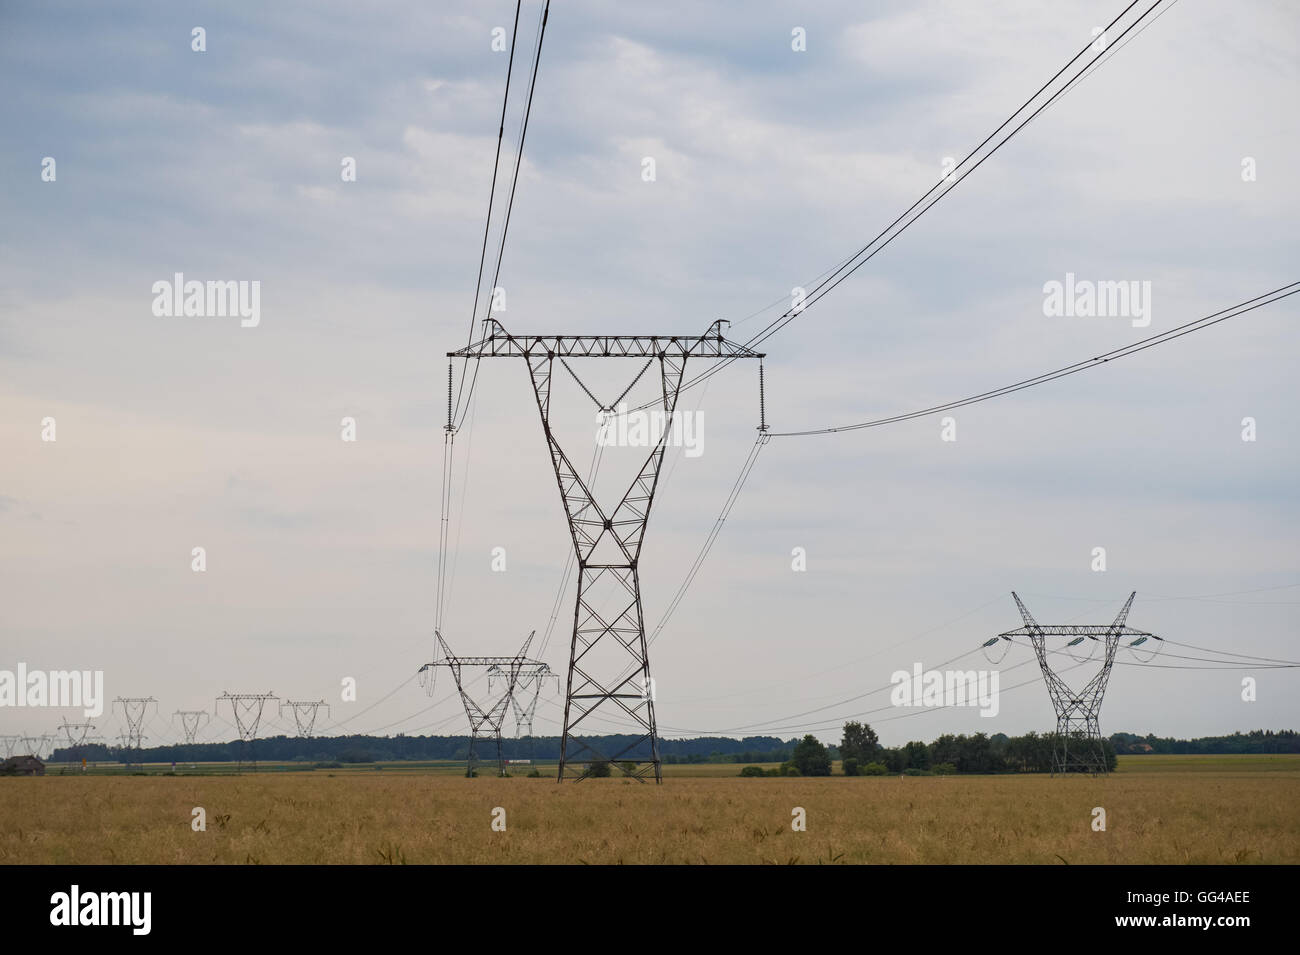 Electricity pylons in countryside - Stock Image